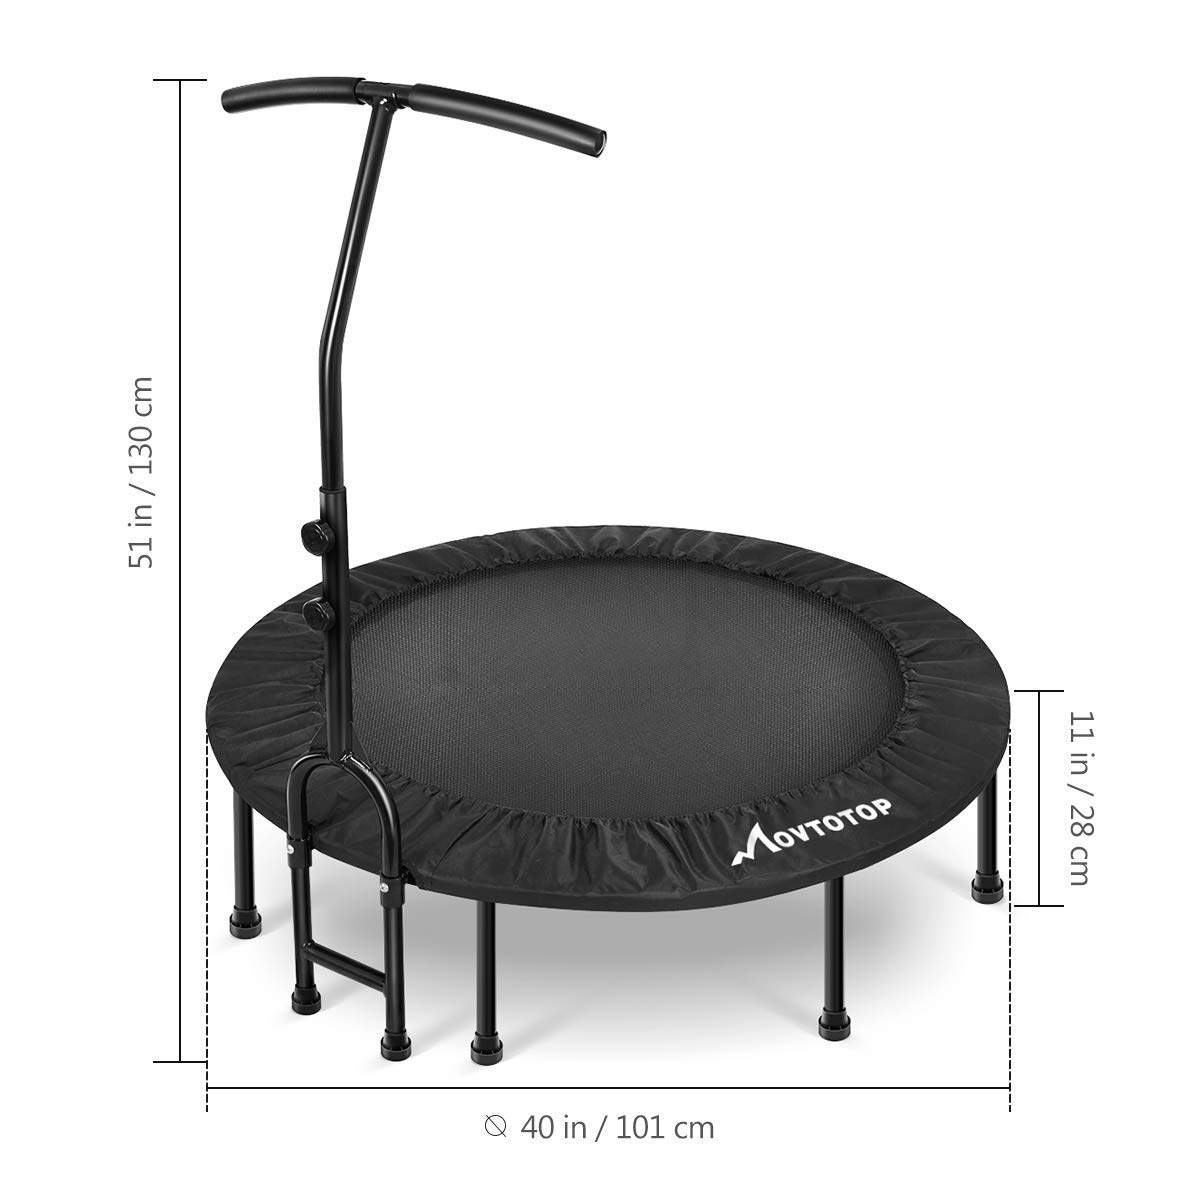 MOVTOTOP 48 40 Inch Indoor Trampoline, Folding Mini Trampoline with Adjustable Handrail and Safety Pad, Exercise Rebounder for Kids Adults-Black (40 Inch-Foldable) by MOVTOTOP (Image #7)